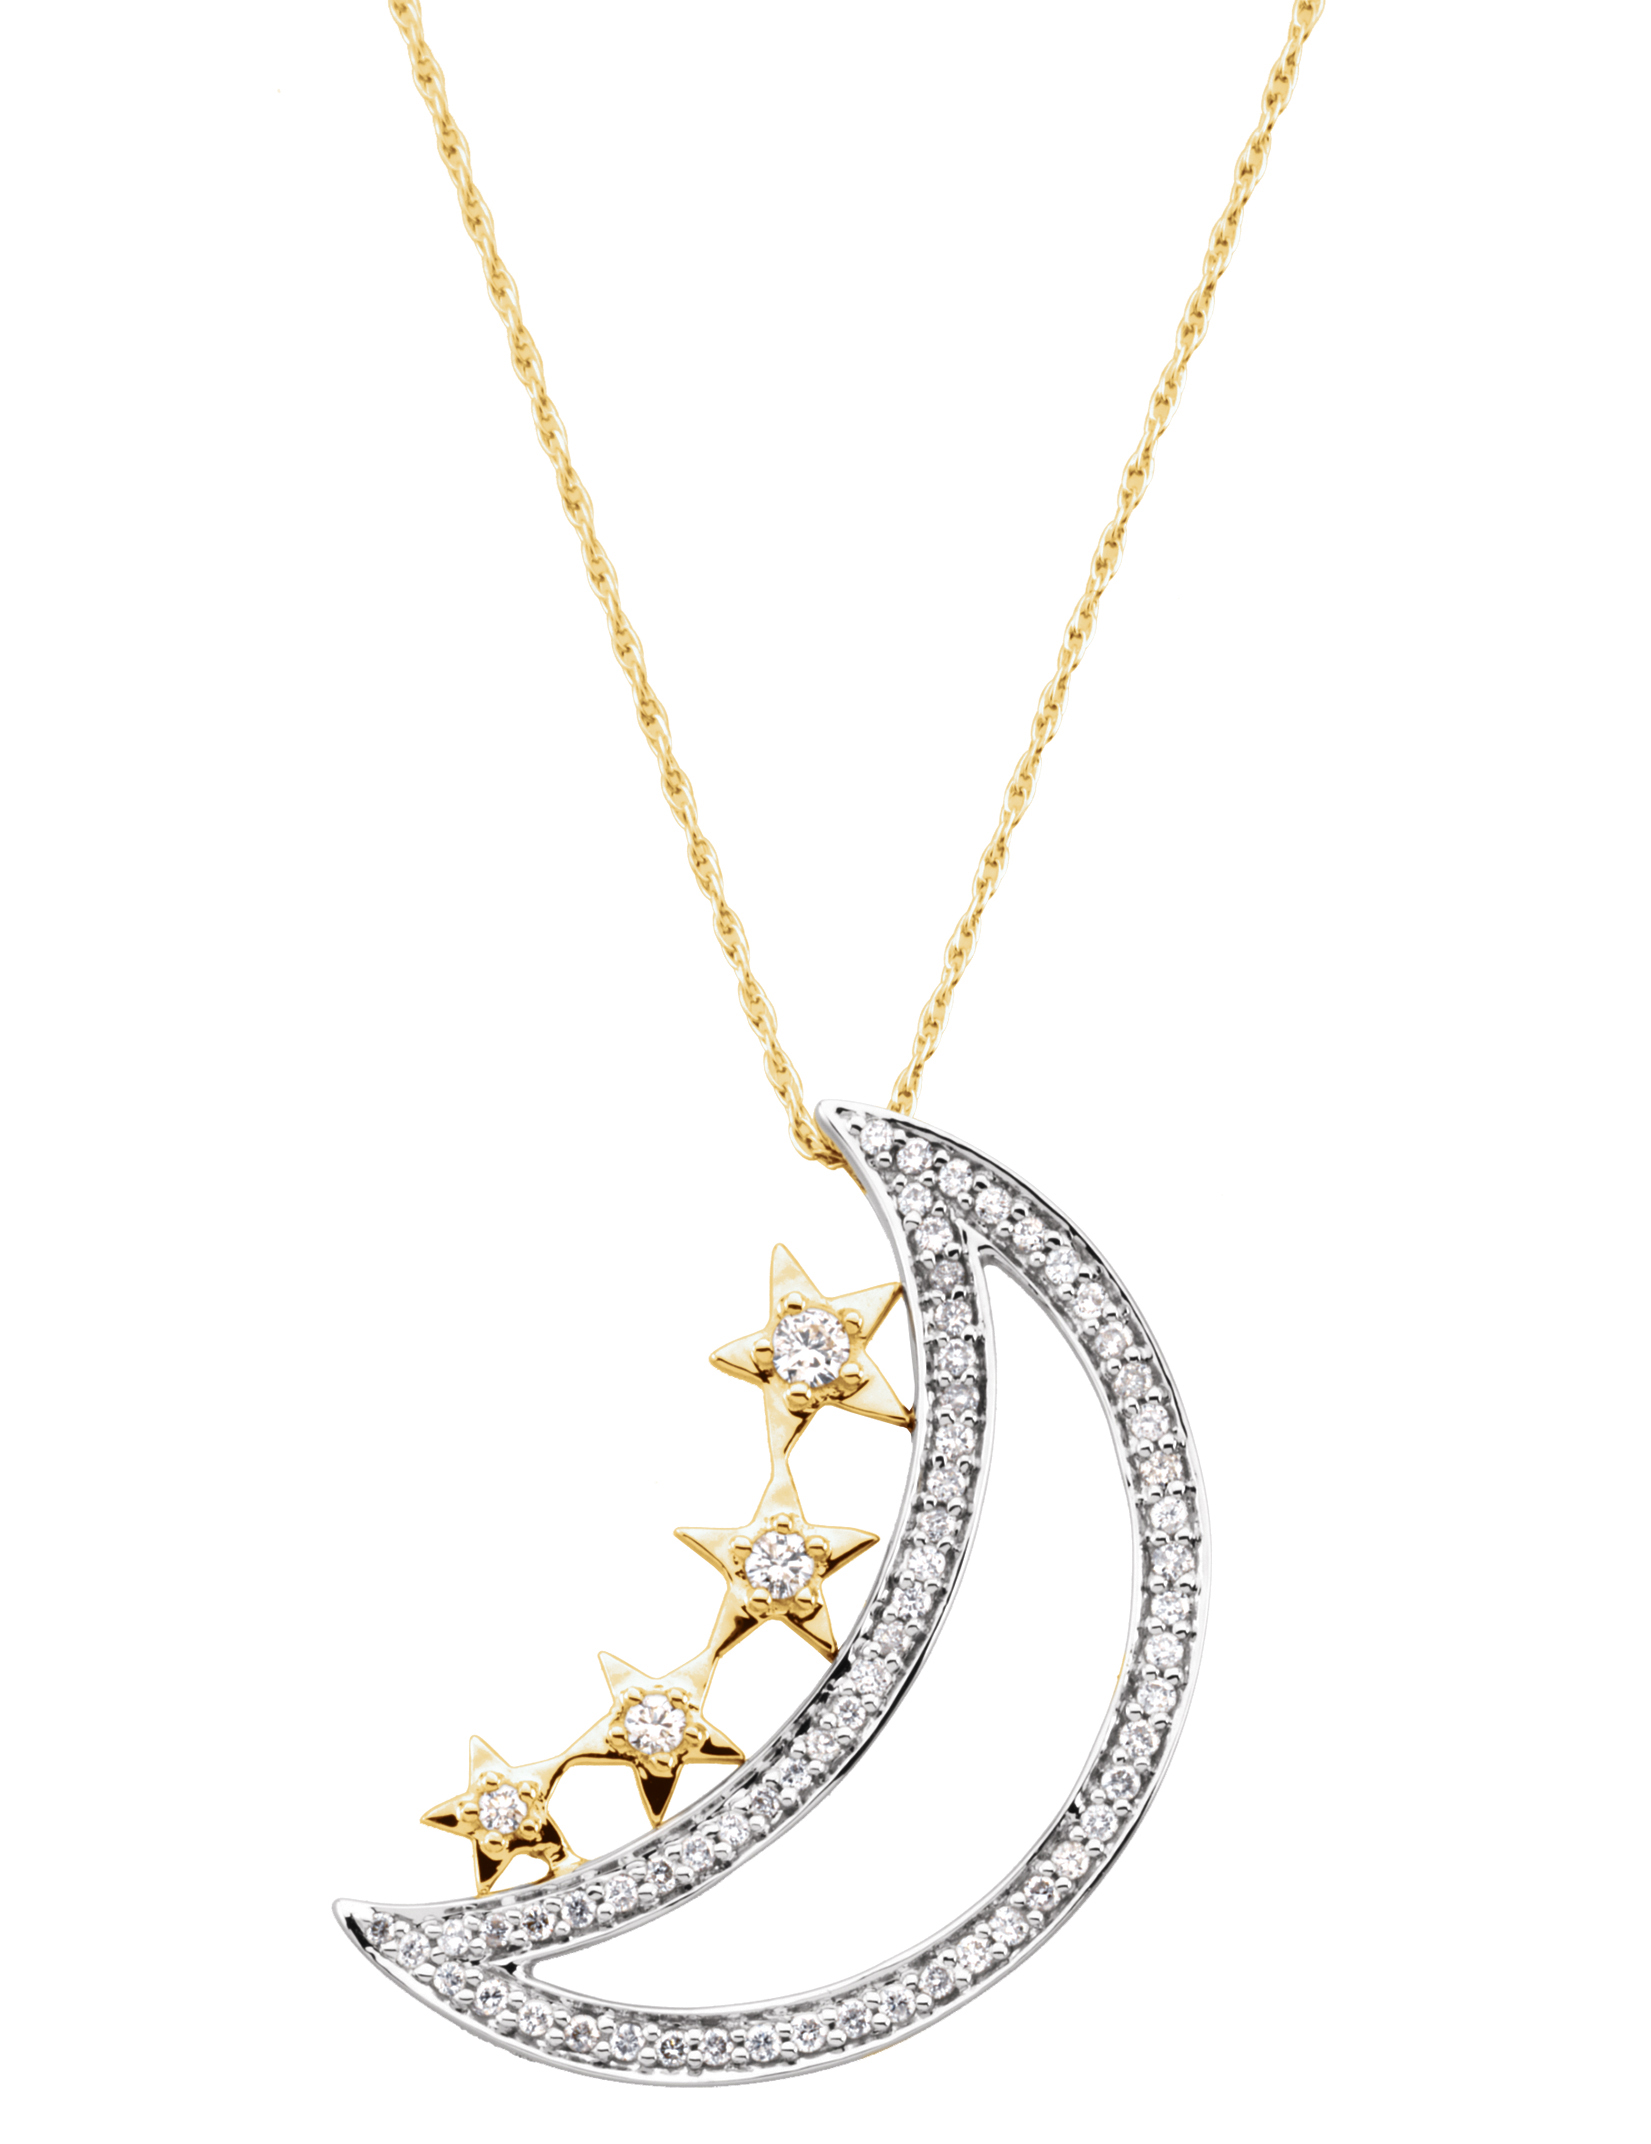 Stuller moon and star pendant | JCK On Your Market